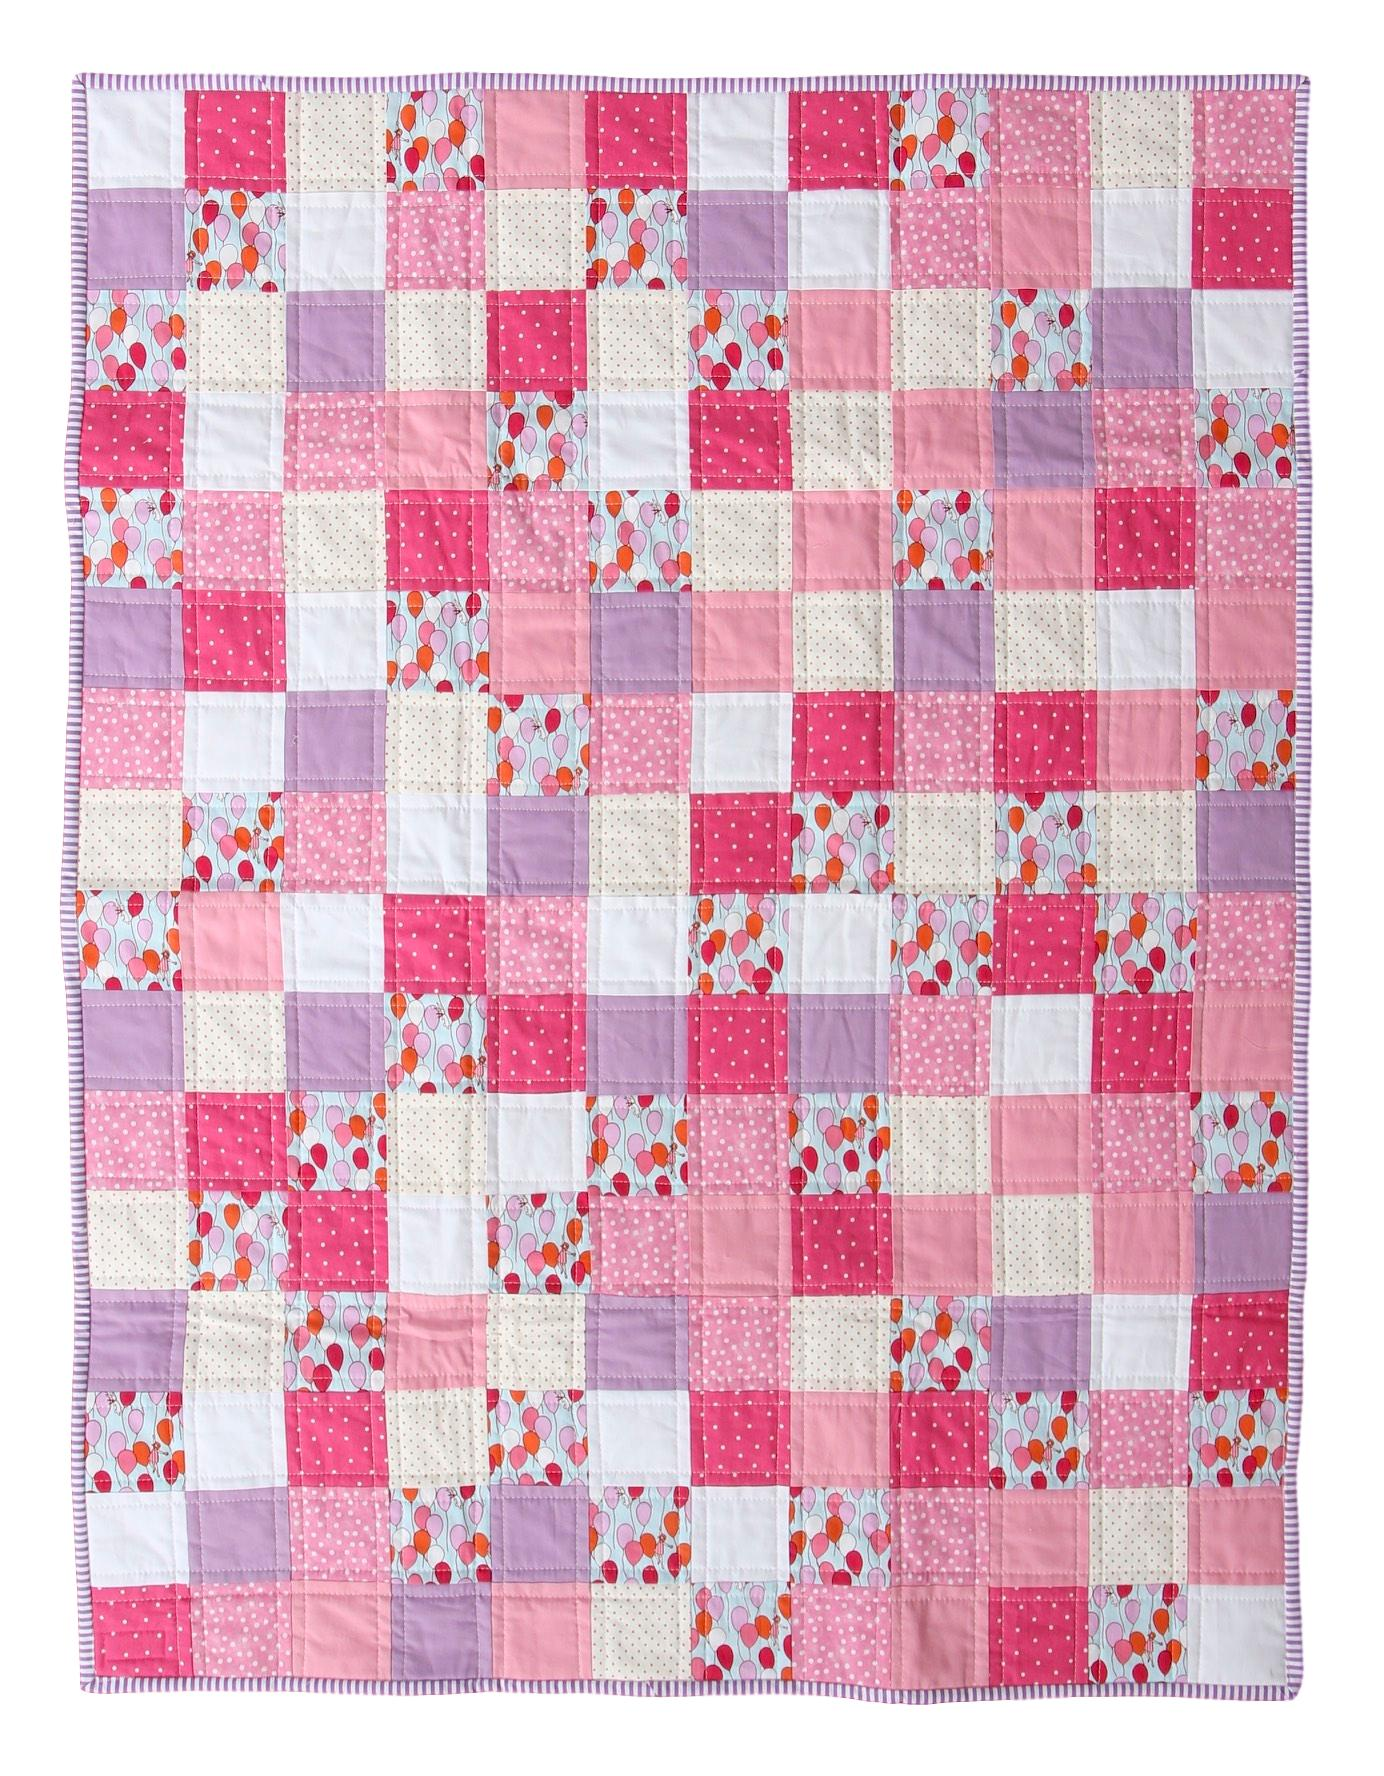 Children at Play Quilt Front